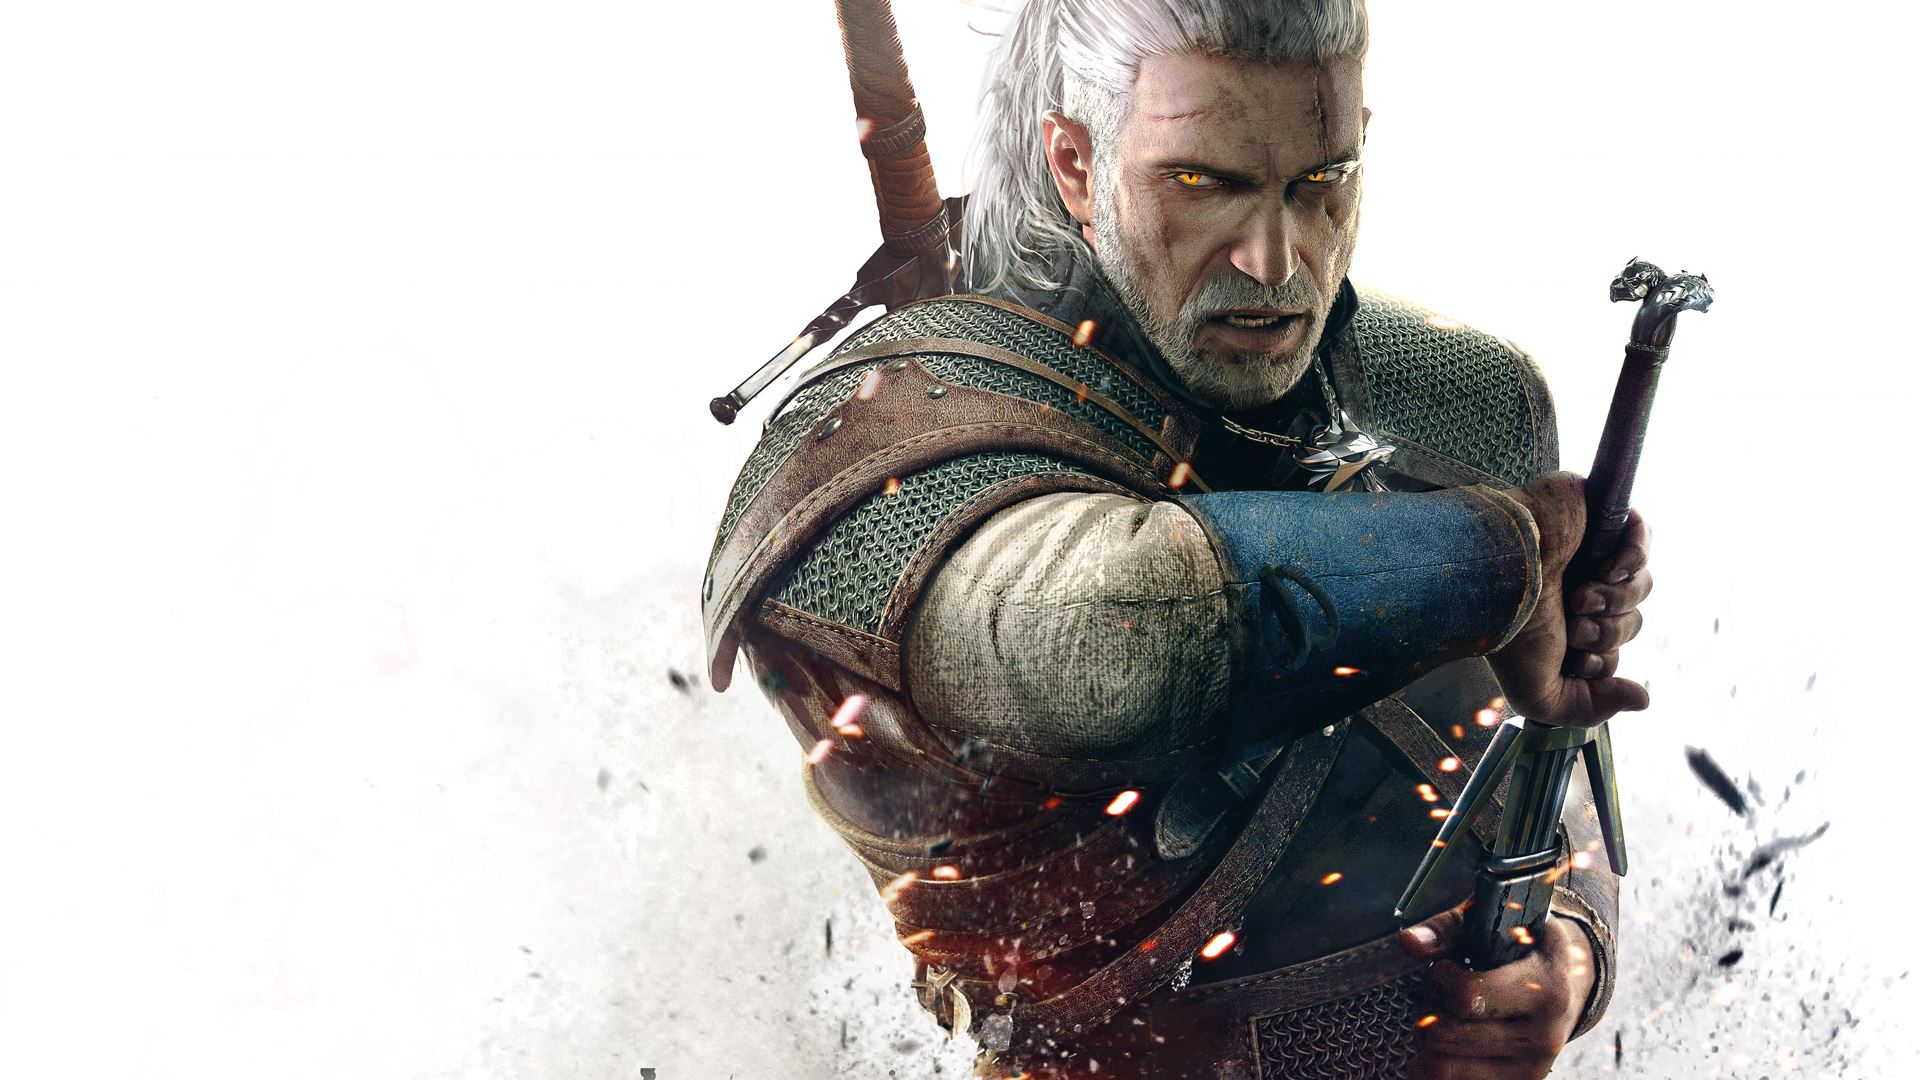 witcher_pic1-the-witcher-3-wild-hunt-february-release-date-confirmed.jpeg